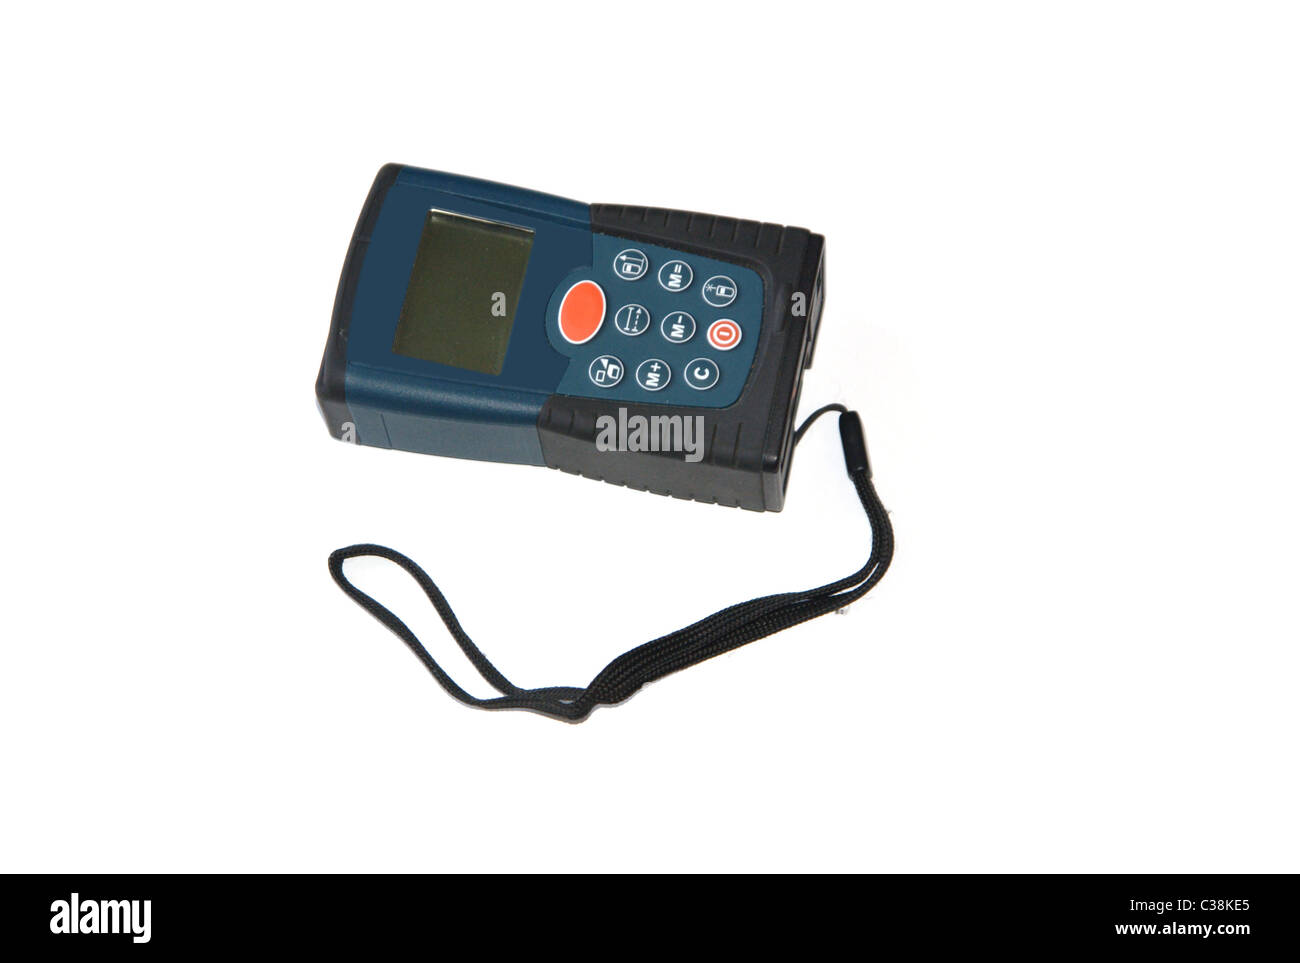 laser rangefinder stock photo: 36455613 - alamy